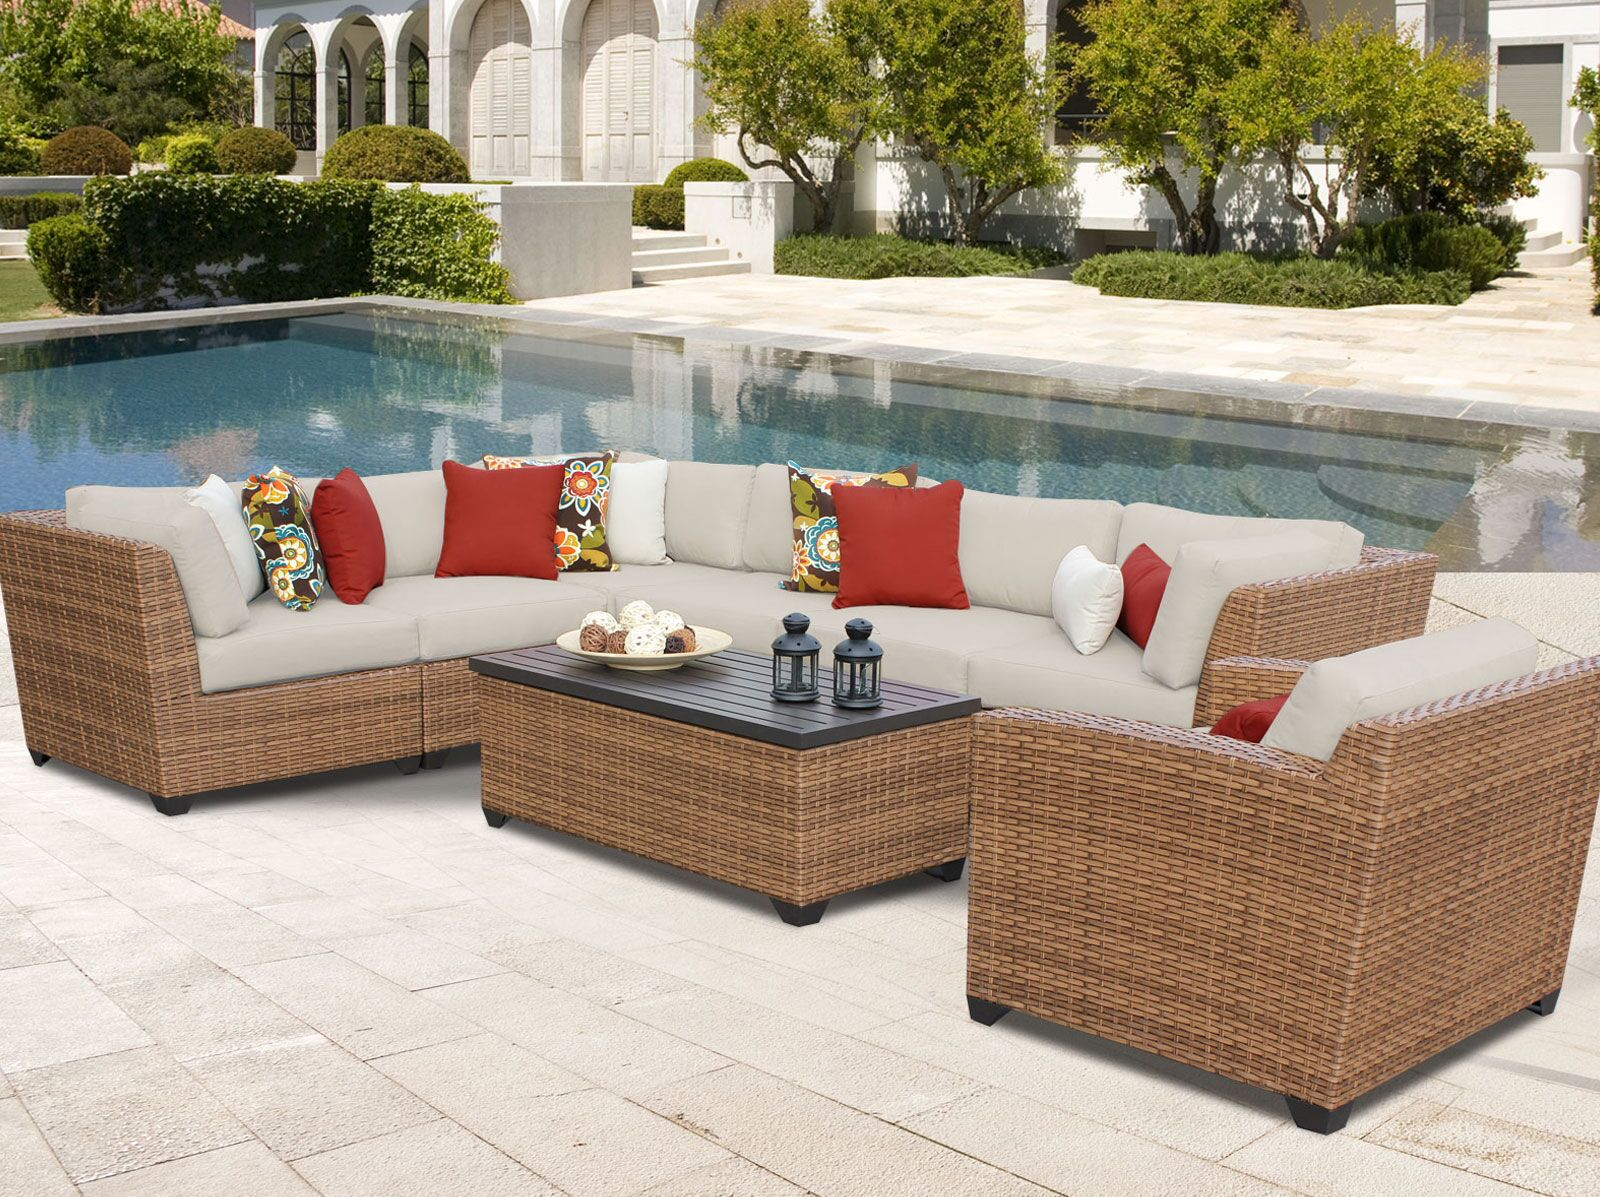 East Village 8 Piece Rattan Sectional Seating Group with Cushions Color: Beige